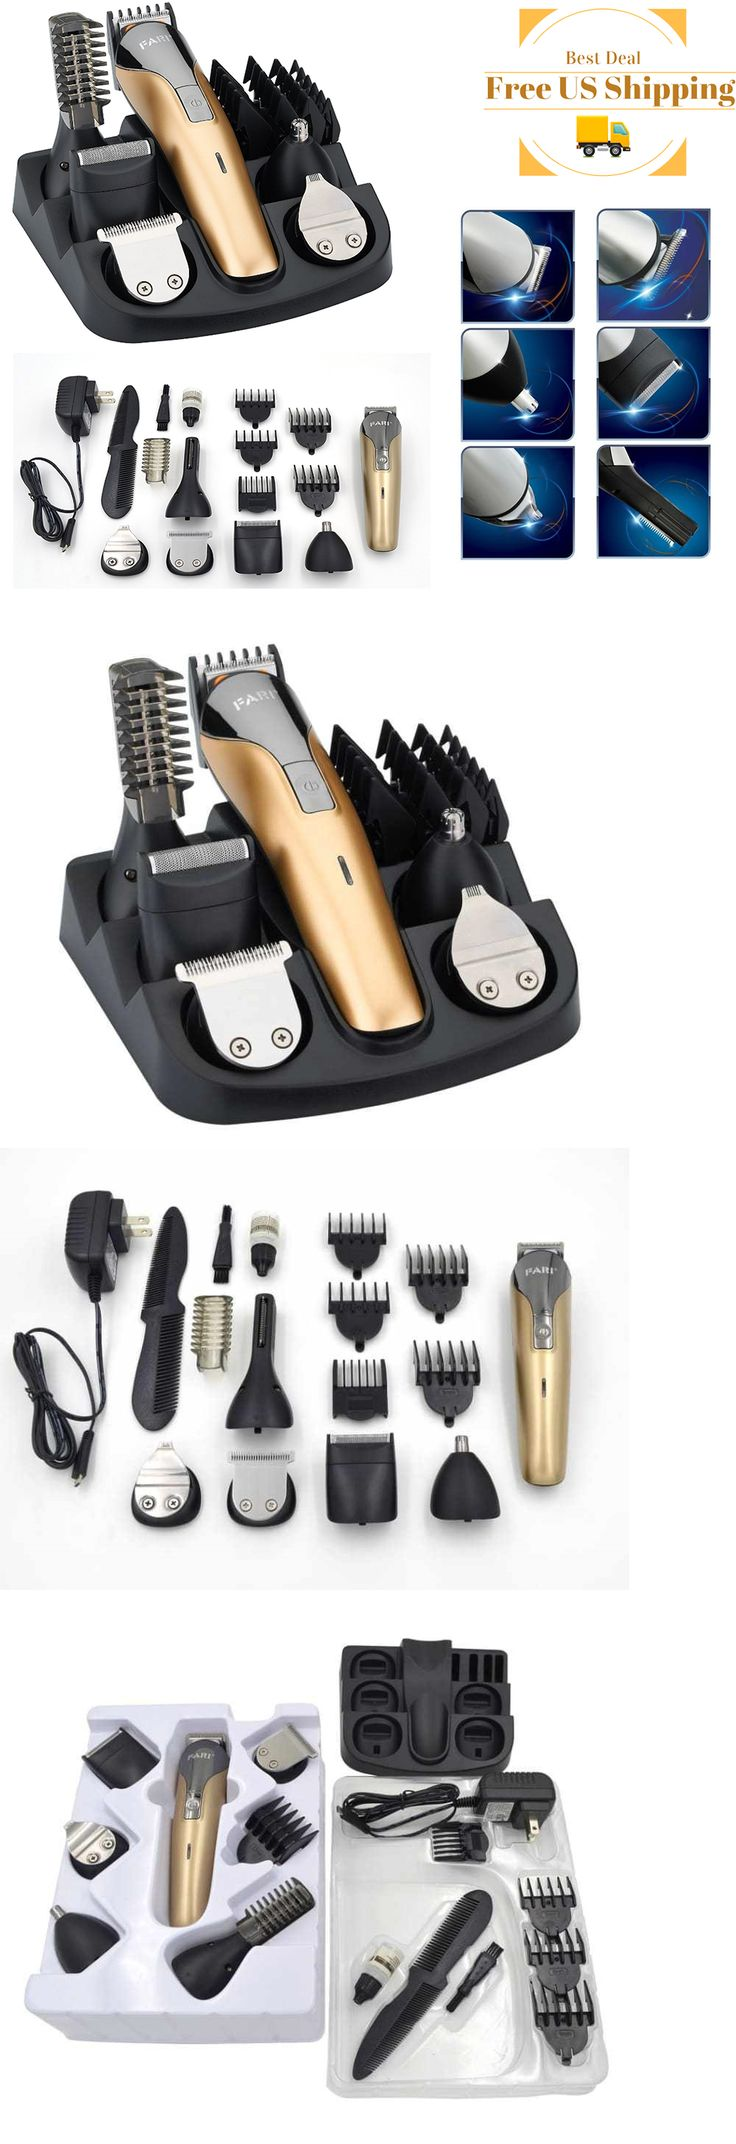 Clippers and Trimmers: Rechargeable Hair Trimmer Professional Beard Clipper Mustache Shaver Barber Cut BUY IT NOW ONLY: $136.89